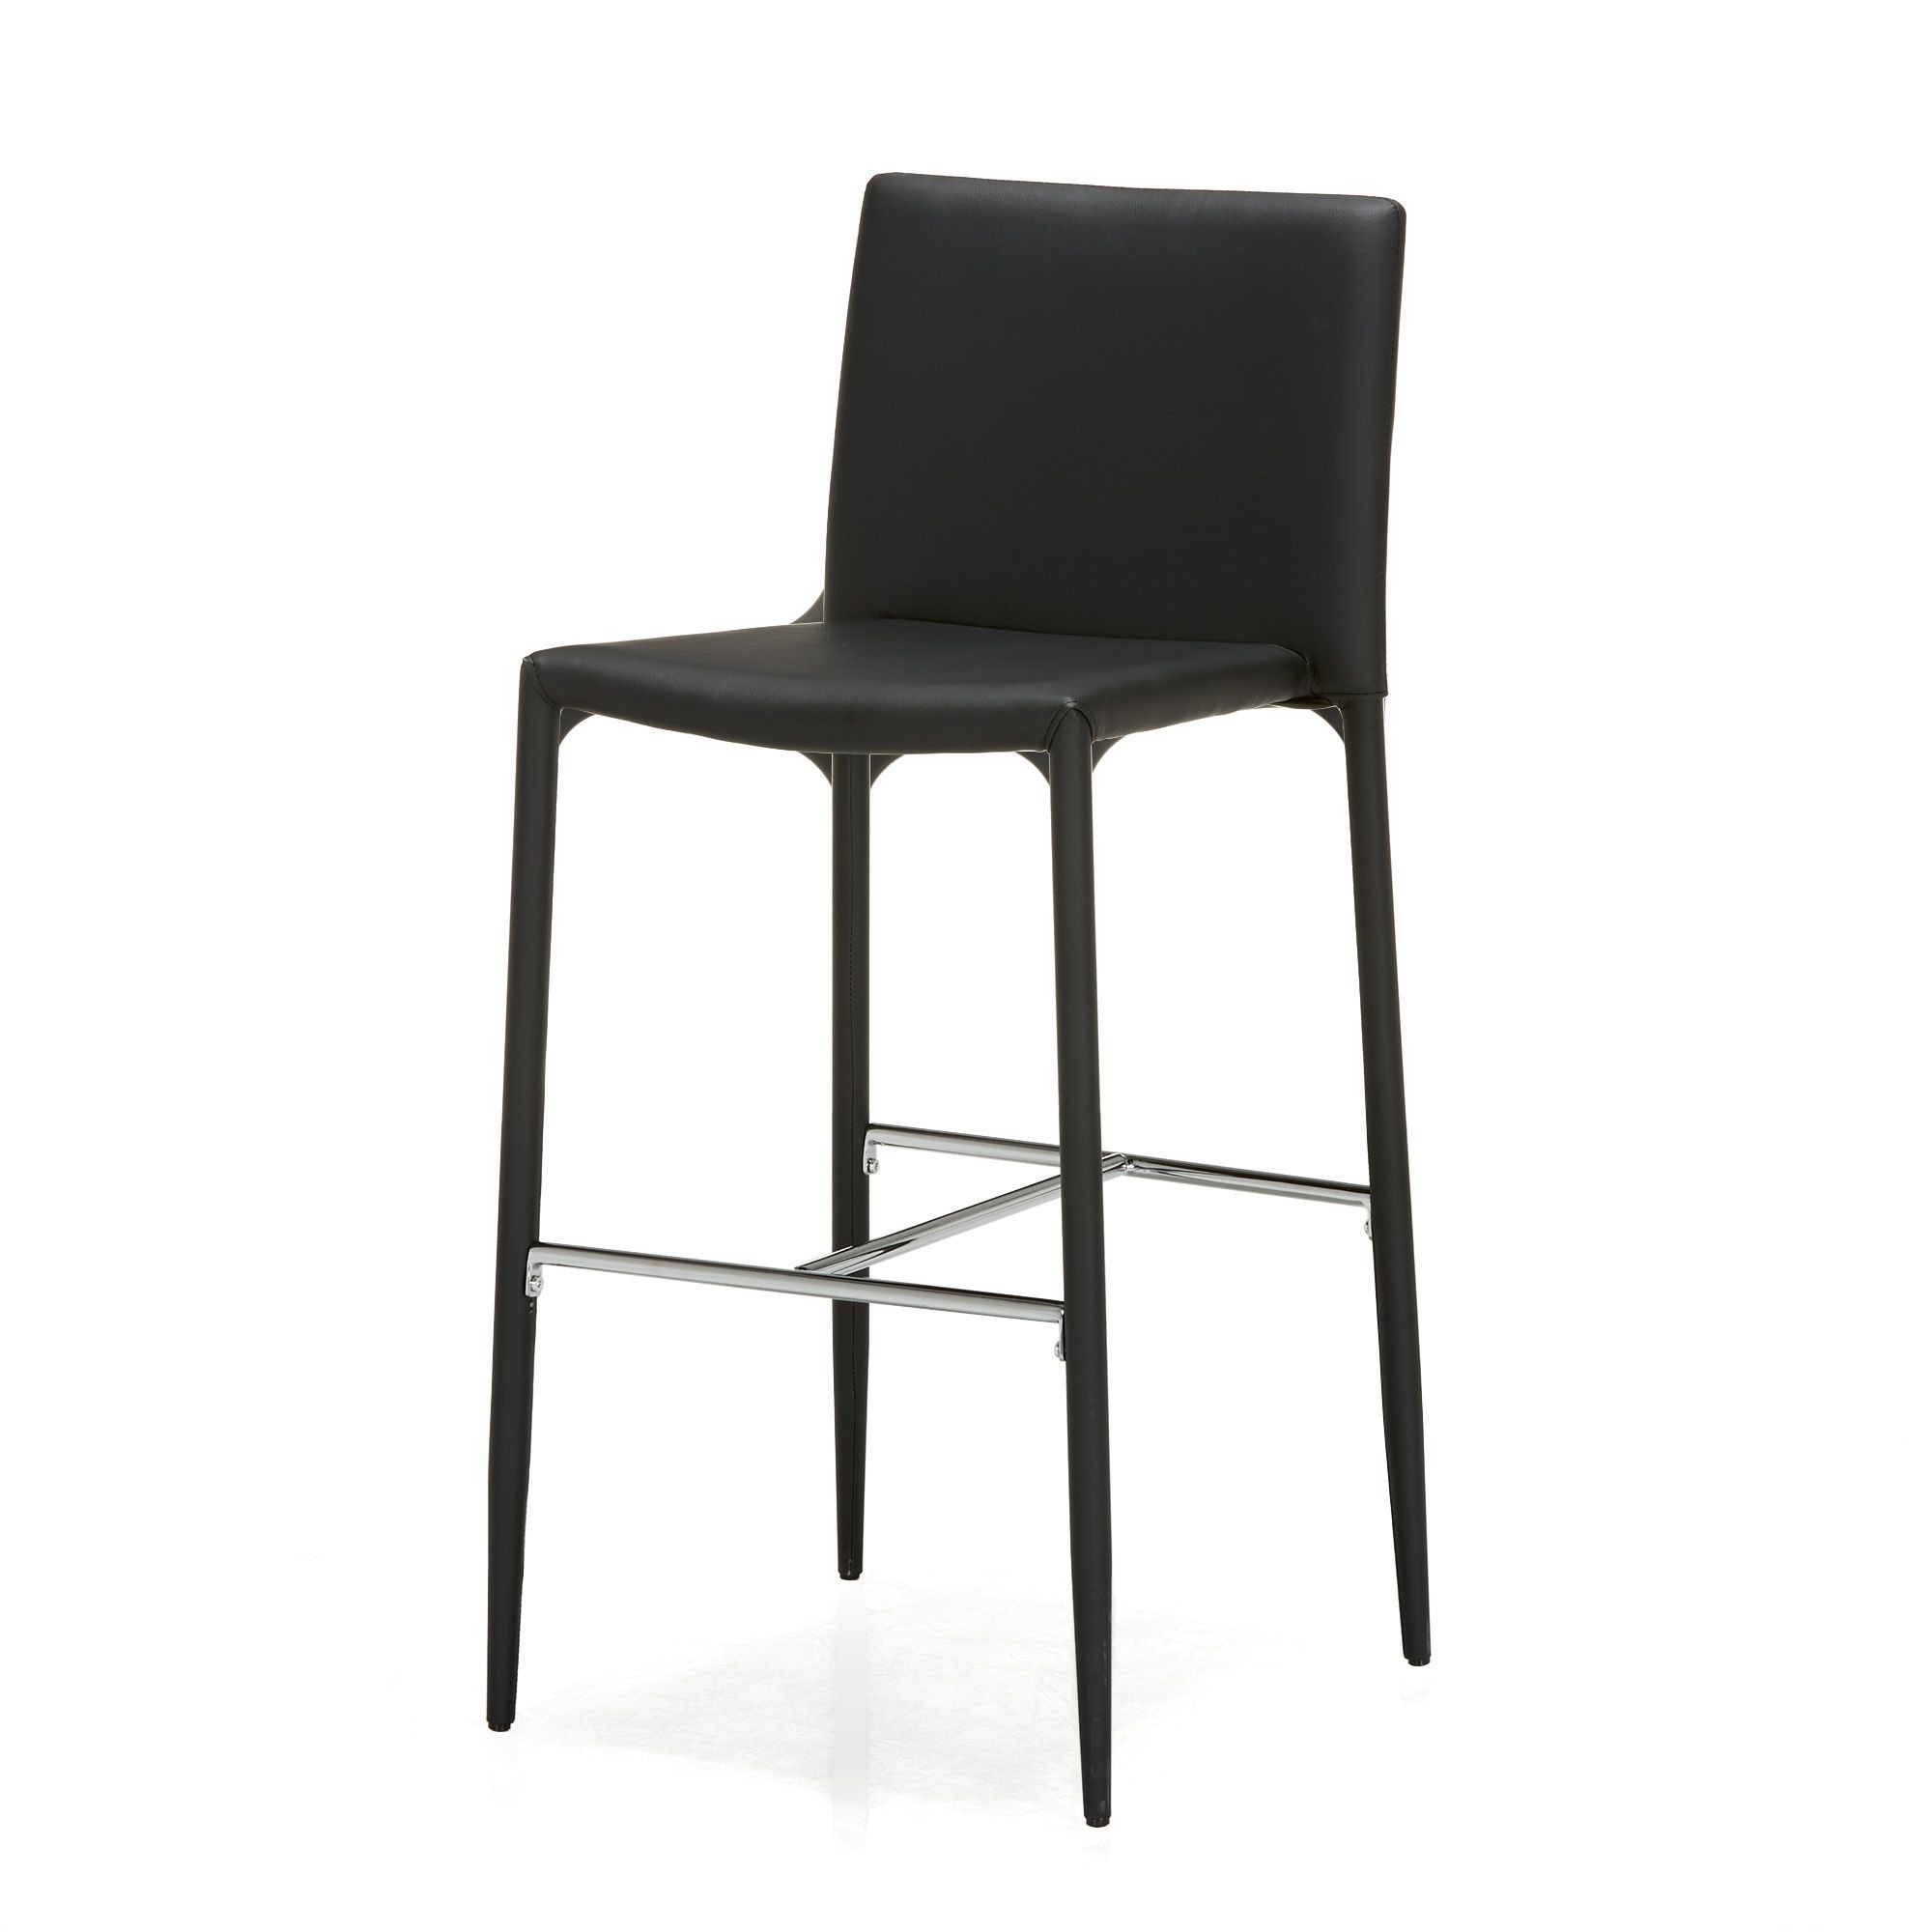 tabouret de bar alinea tabouret de bar bleu avec pieds en h tre massif jade tabouret consoles. Black Bedroom Furniture Sets. Home Design Ideas